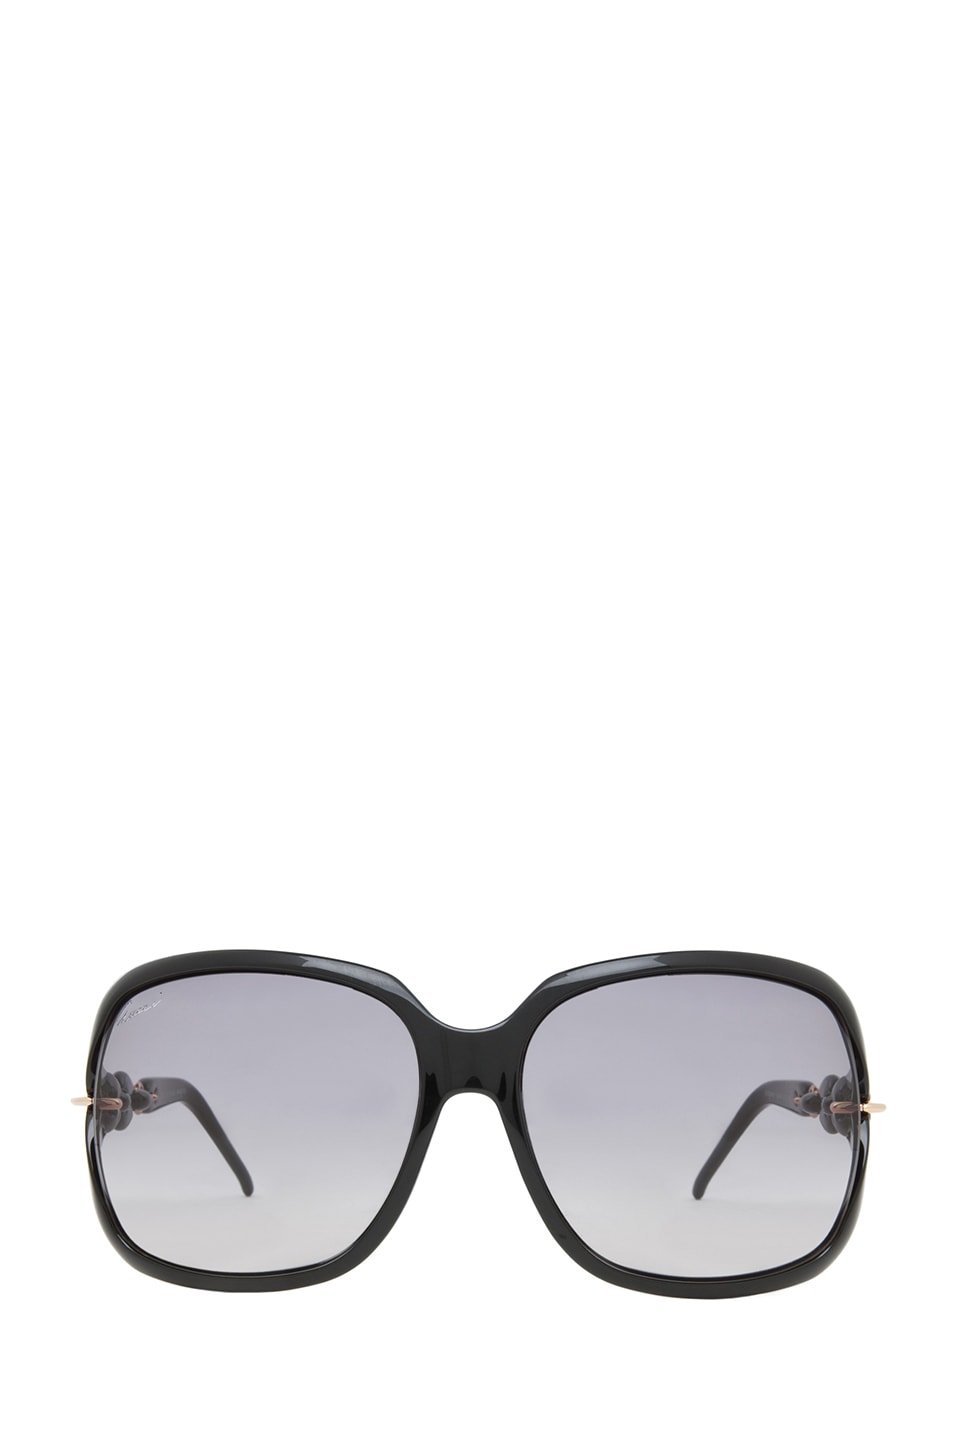 Image 1 of Gucci 3584 Sunglasses in Shiny Black & Dark Gray Ochre